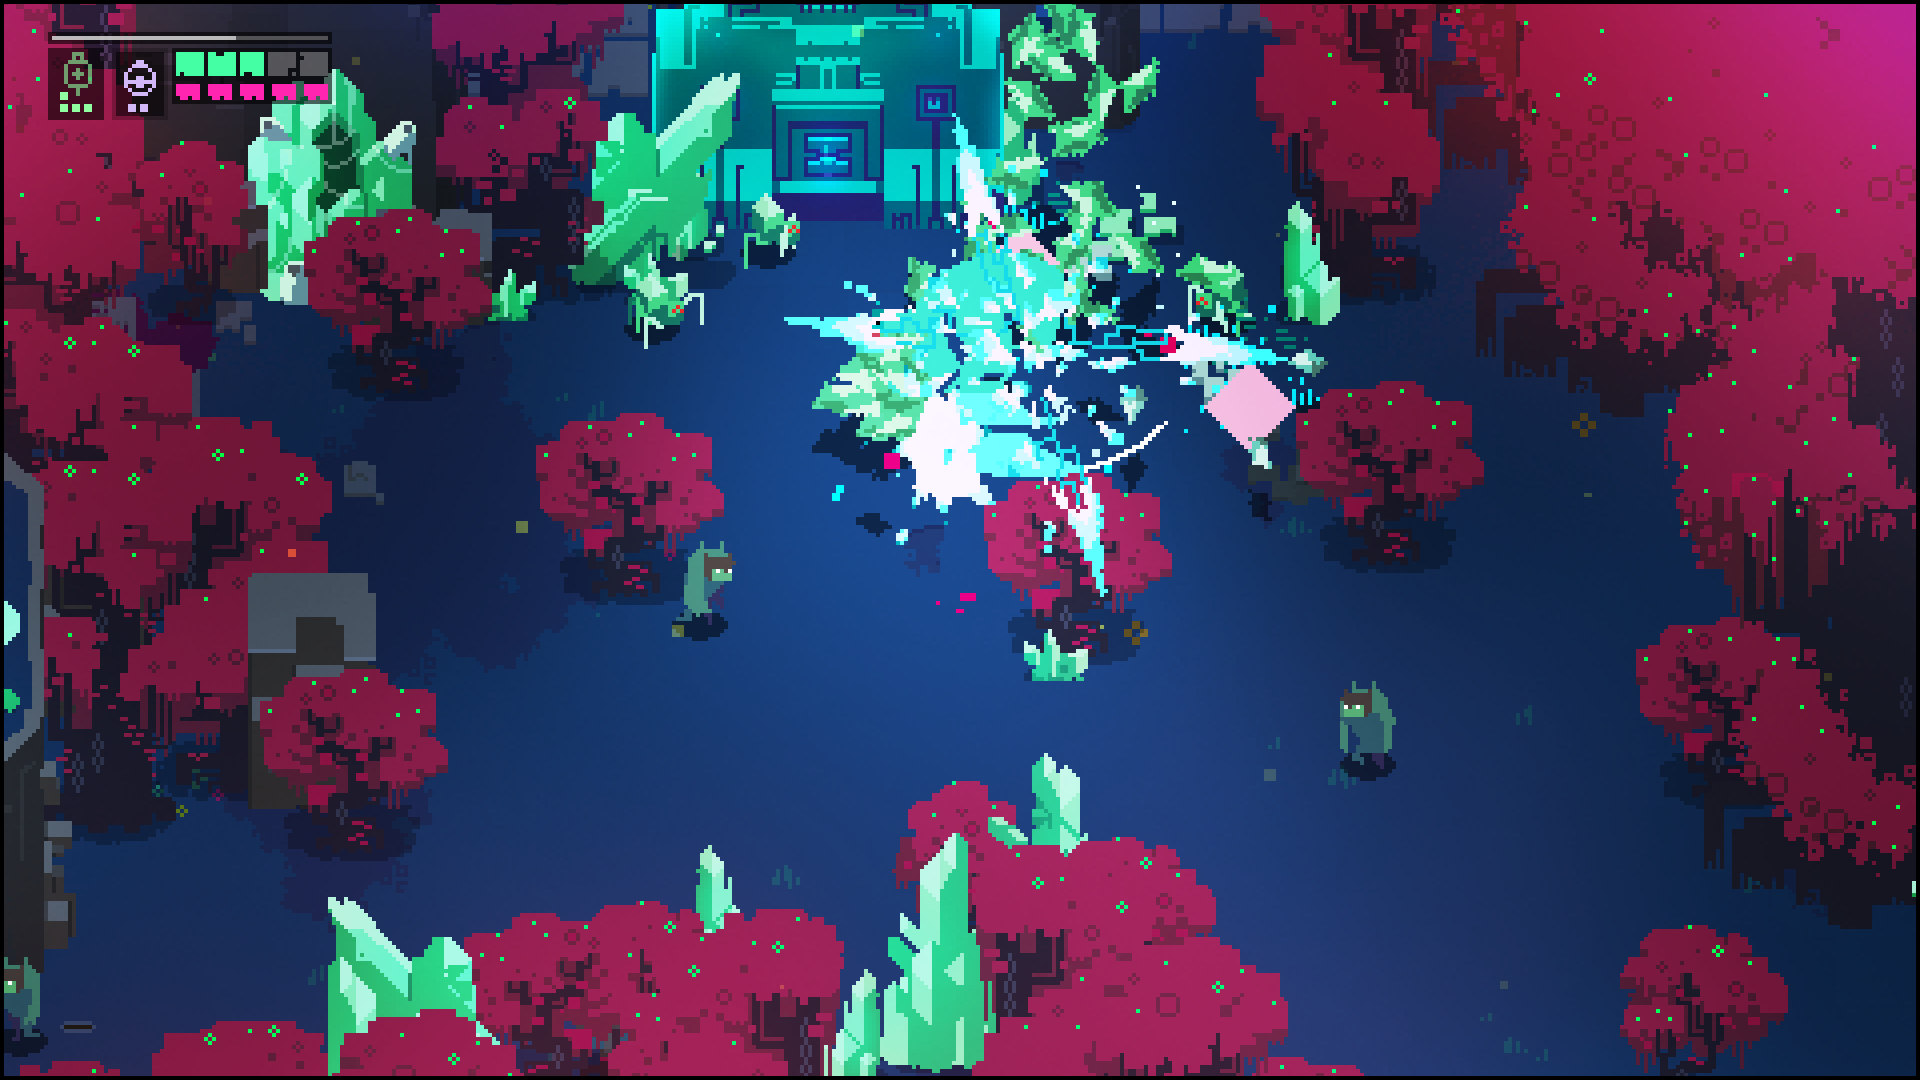 Hyper Light Drifter Hd Wallpaper Background Image 1920x1080